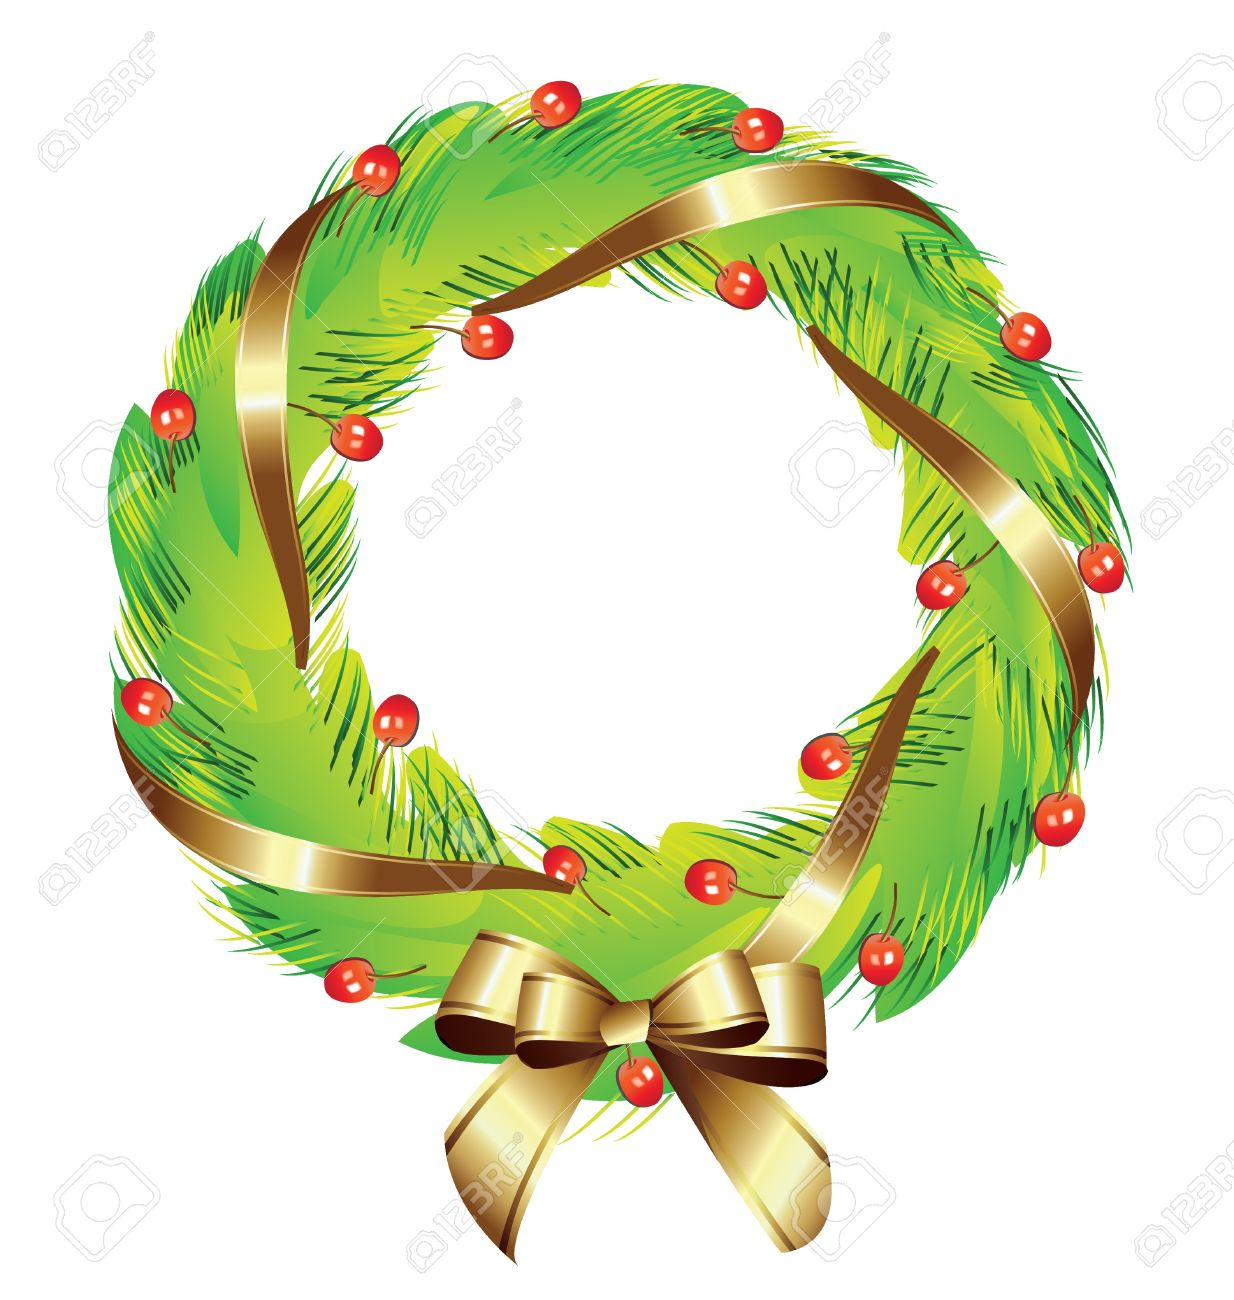 Gold Christmas Wreath.Christmas Wreath With Gold Ribbon